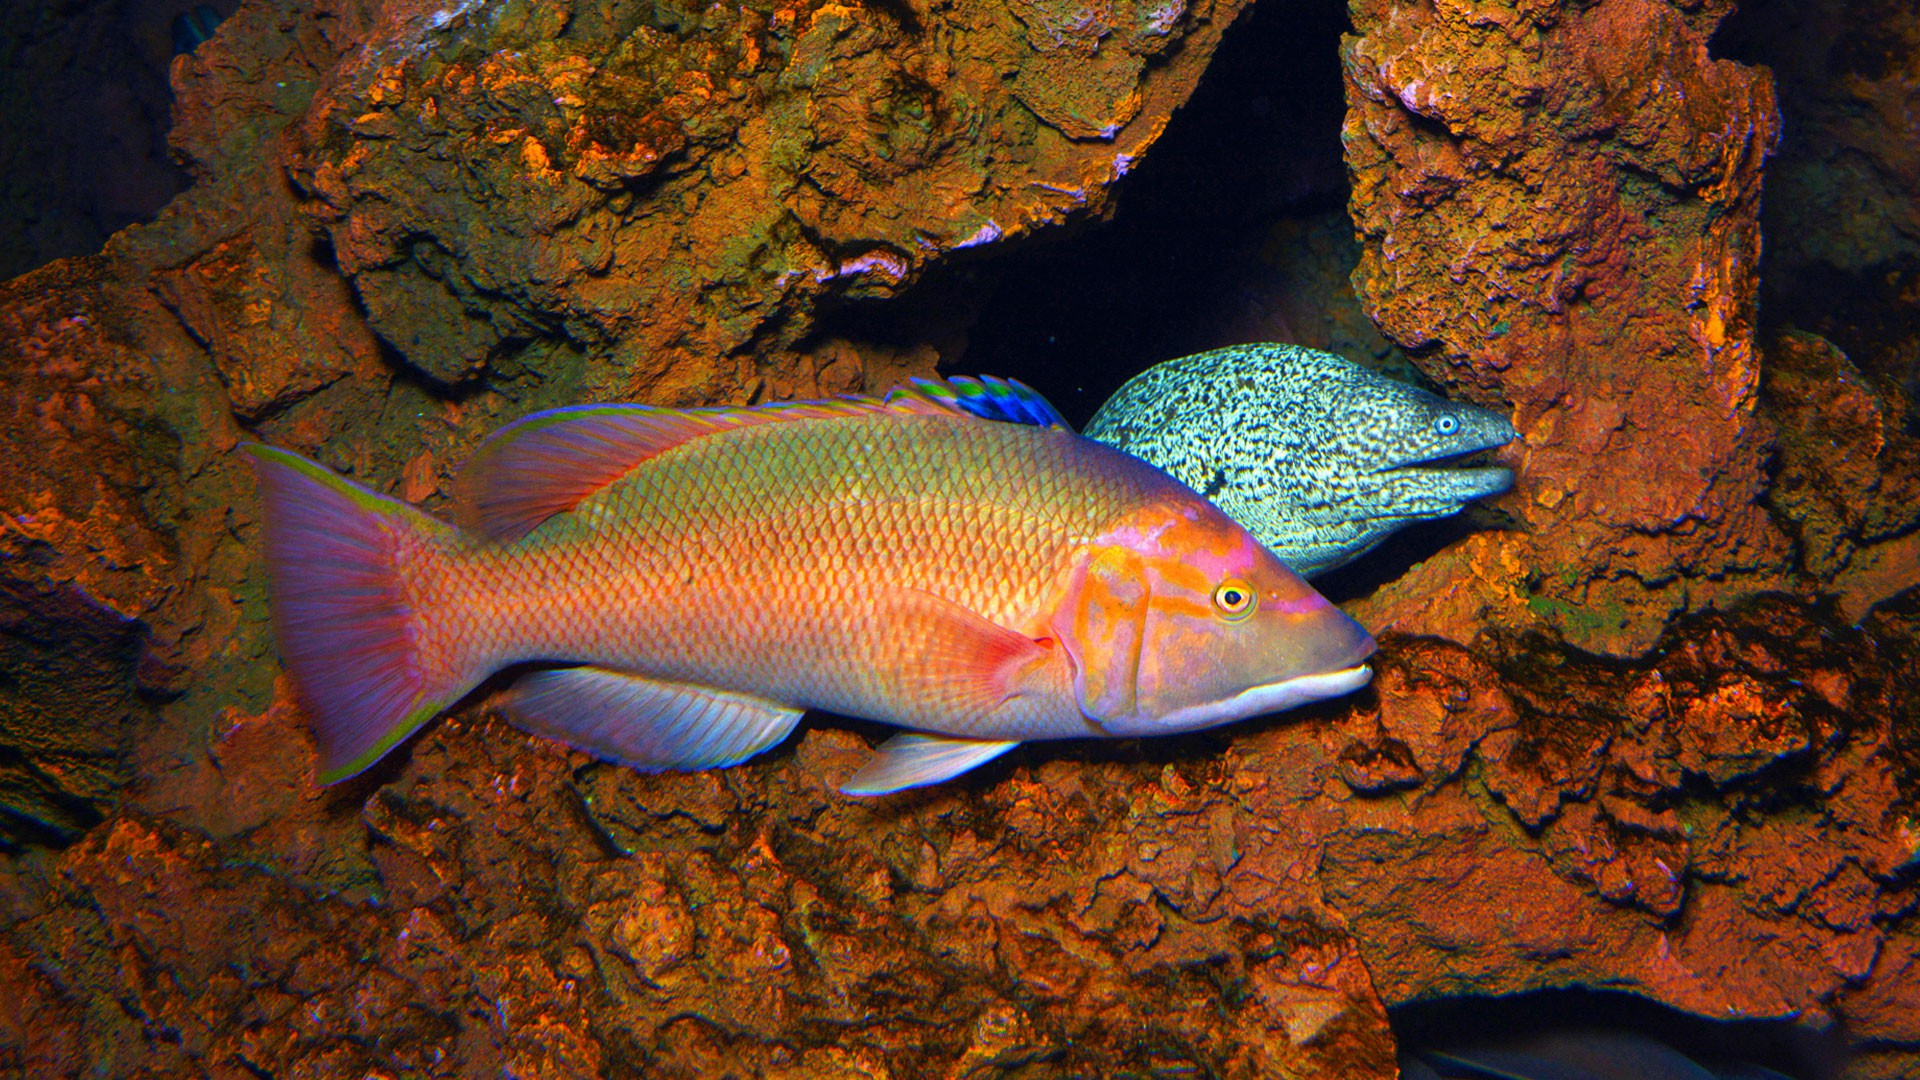 Barred hogfish